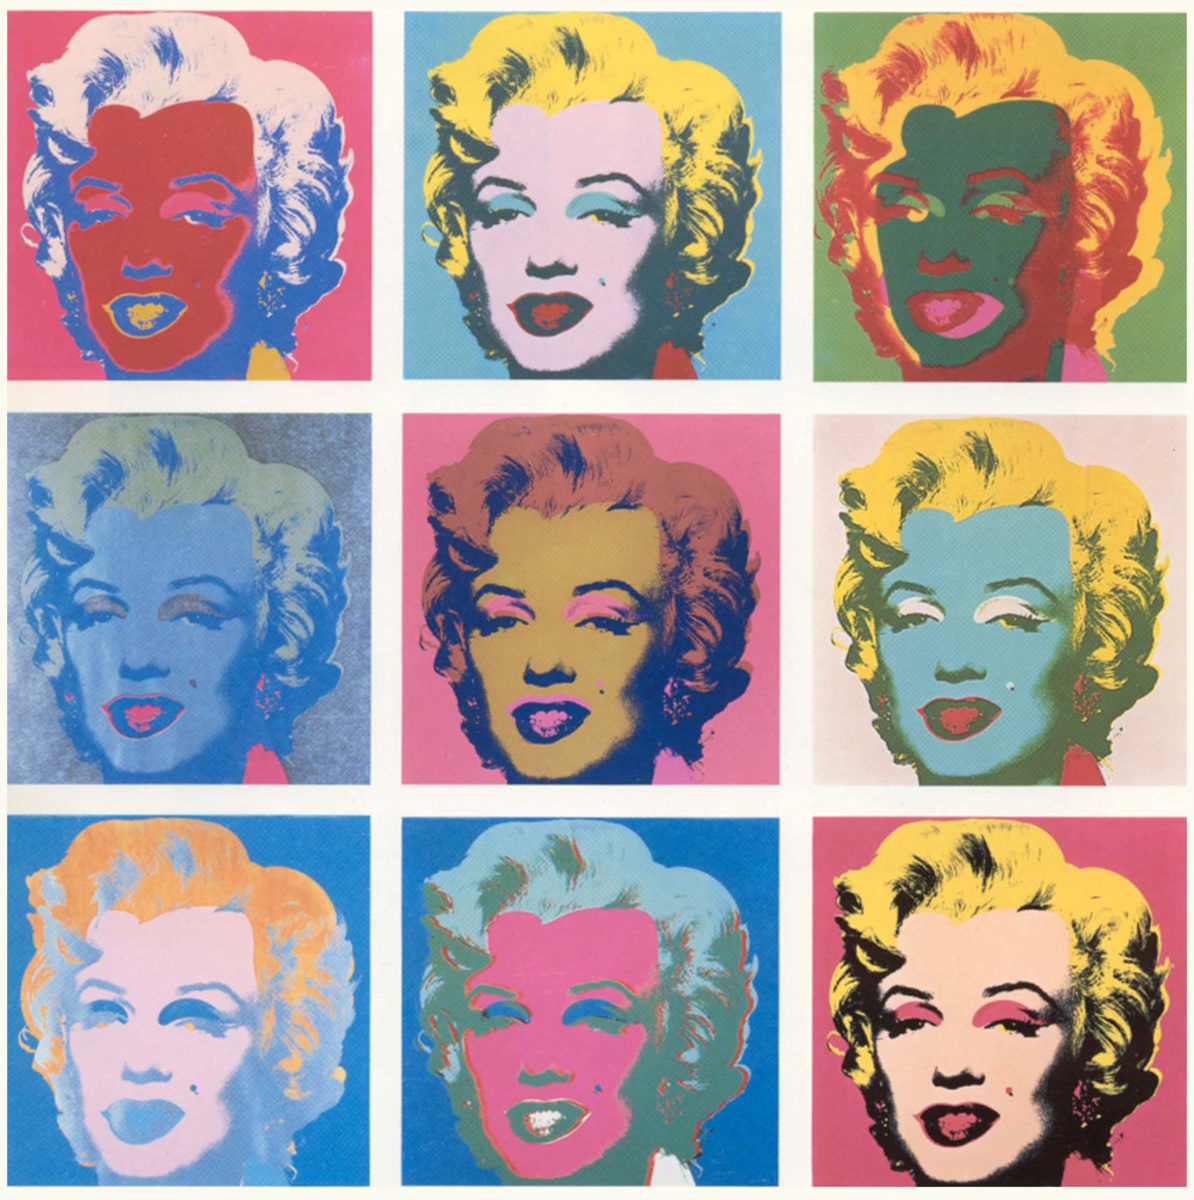 Andy Warhol, Marilyn Monroe, 1967 (Courtesy: Colorado, Powers Art Center, Collezione John e Kimiko Powers)